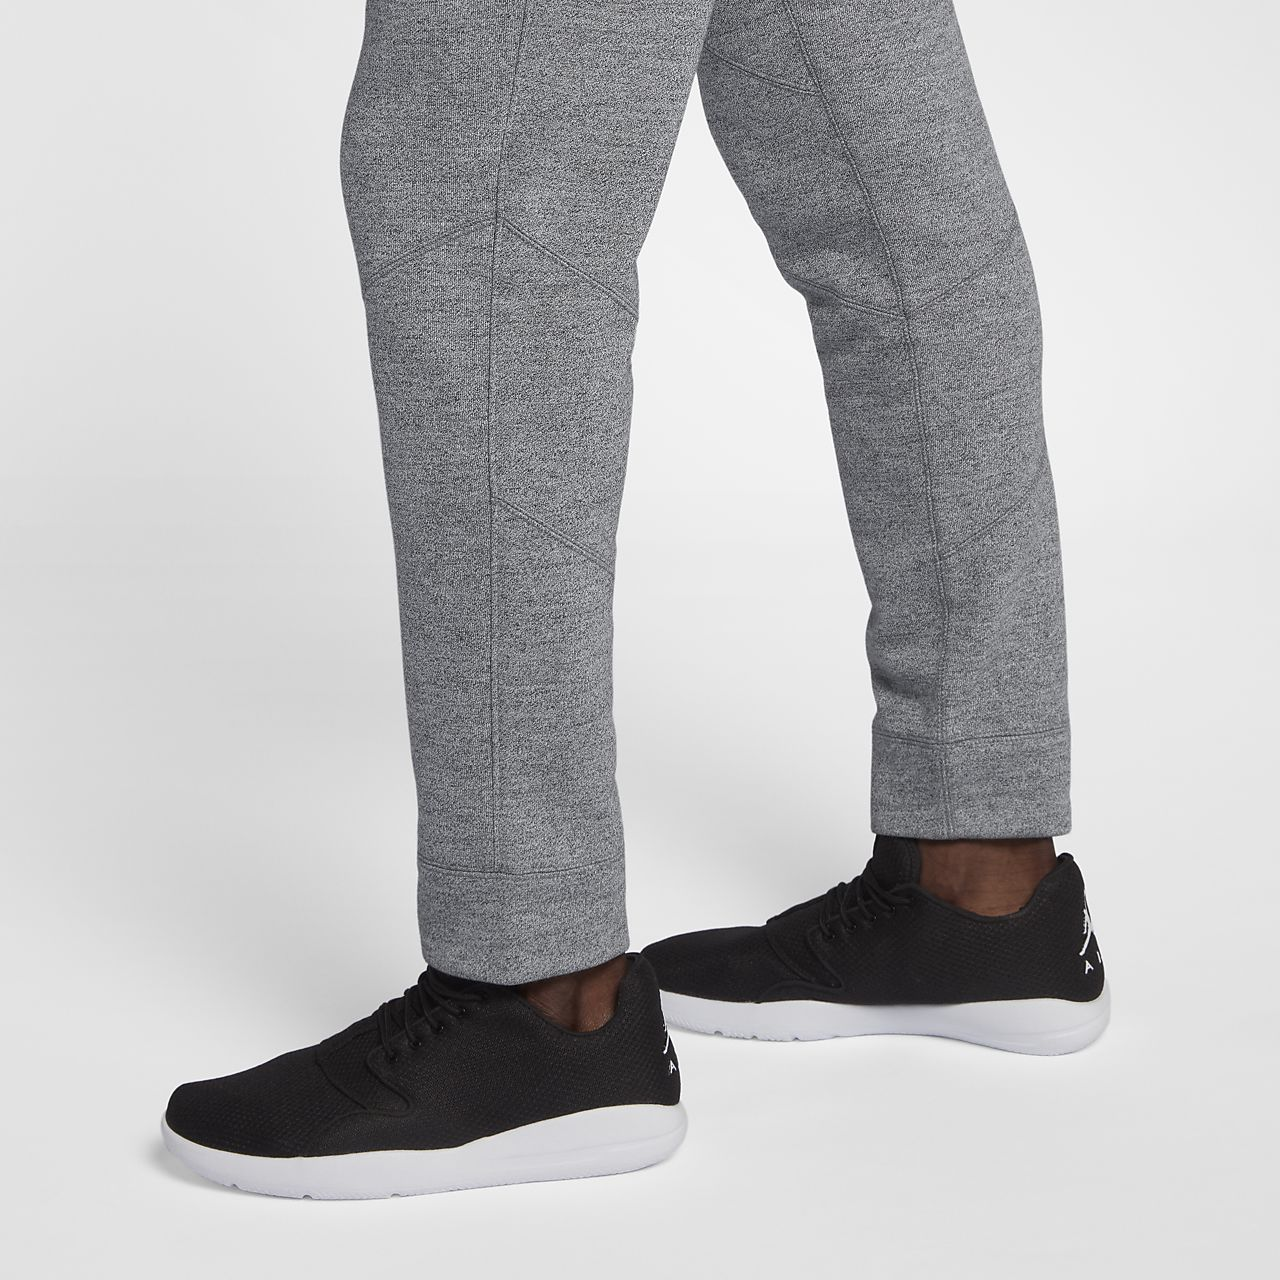 fff3d0d9bbb5f9 Jordan Sportswear Wings Men s Fleece Pants. Nike.com